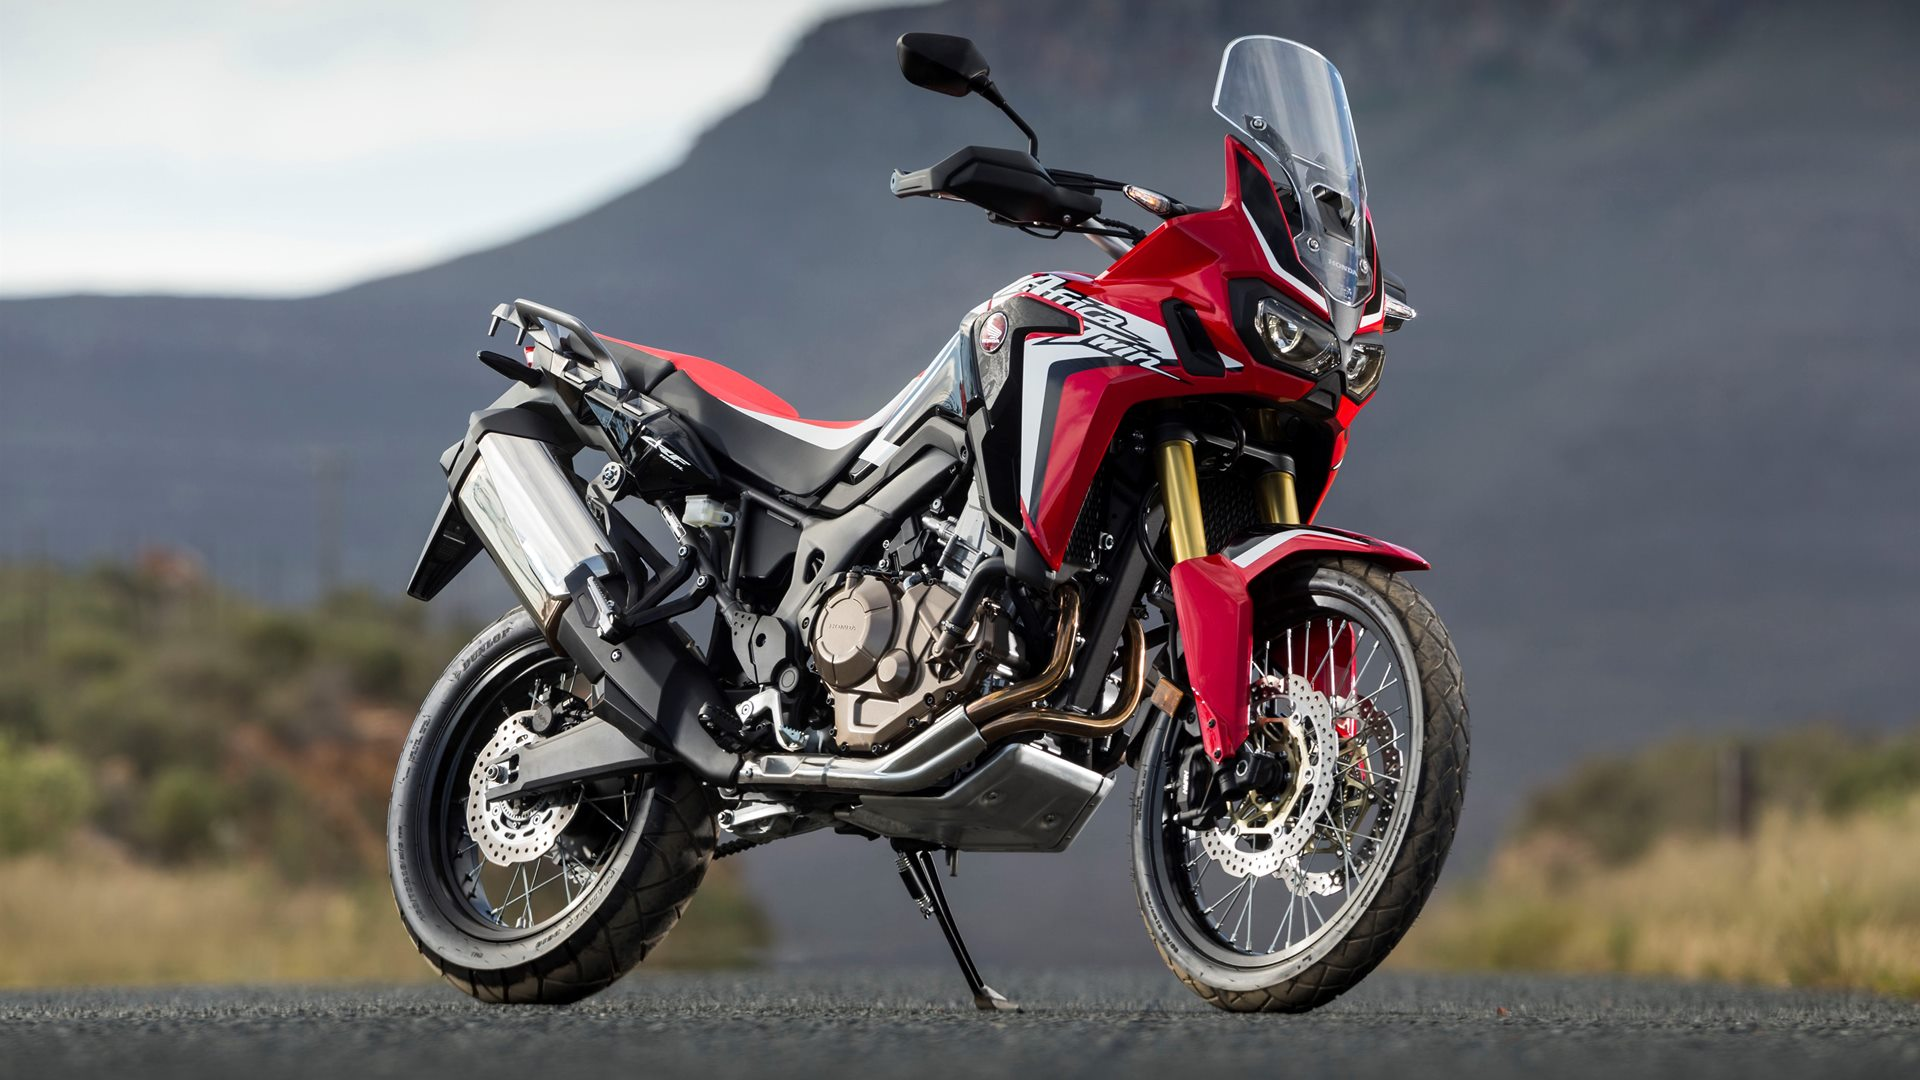 honda crf1000l africa twin launched at lakh. Black Bedroom Furniture Sets. Home Design Ideas